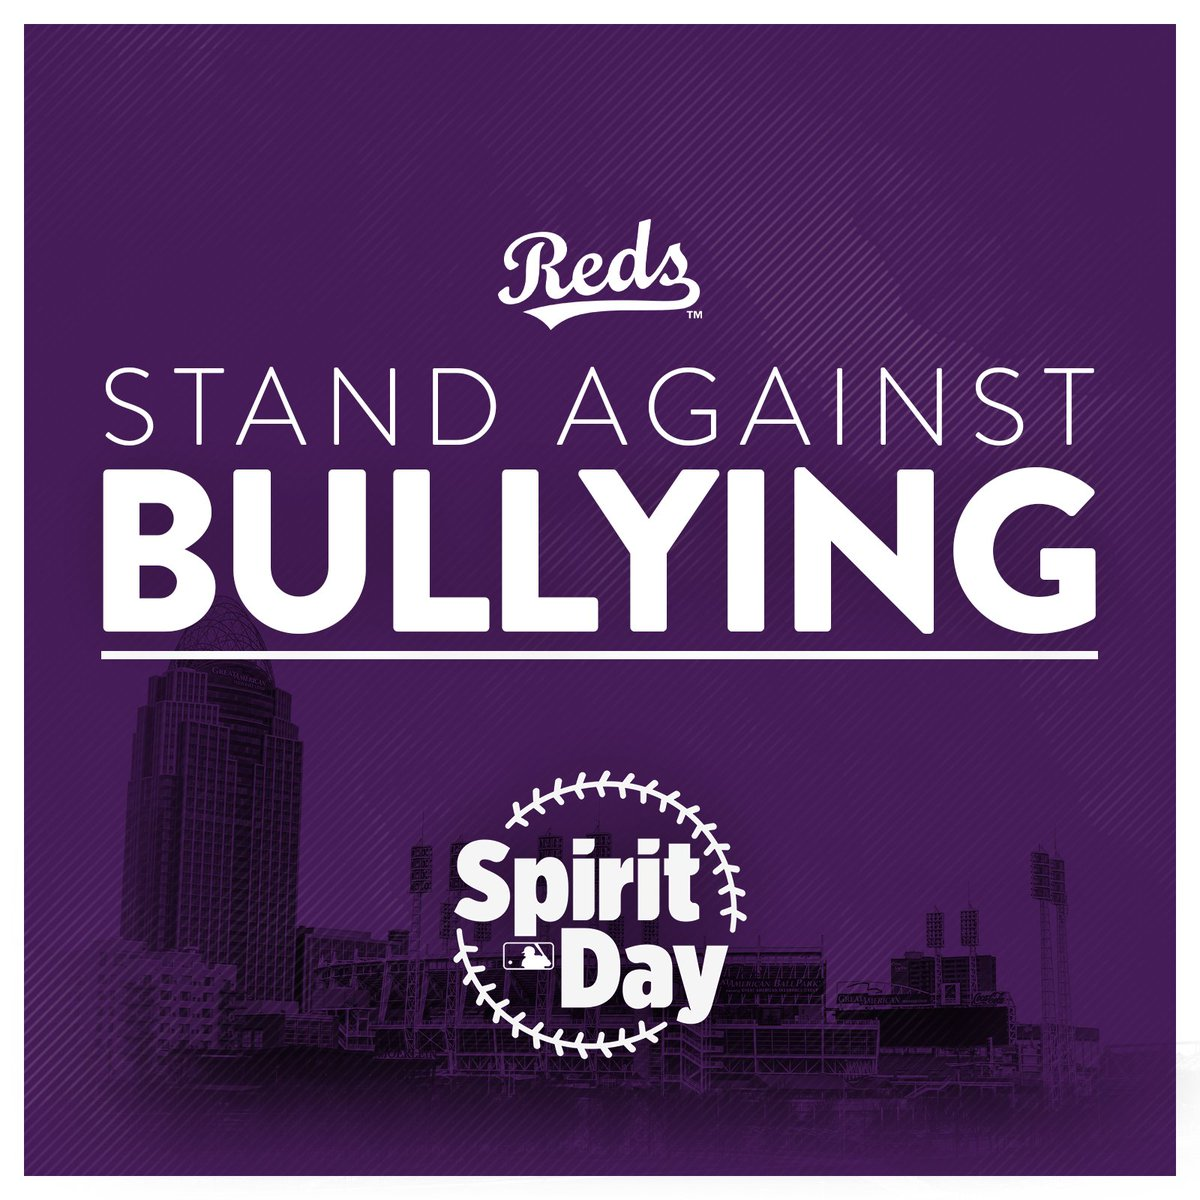 The Reds join MLB in going purple today in honor of #SpiritDay! We are proud to support LGBTQ youth and speak out against bullying. glaad.org/spiritday